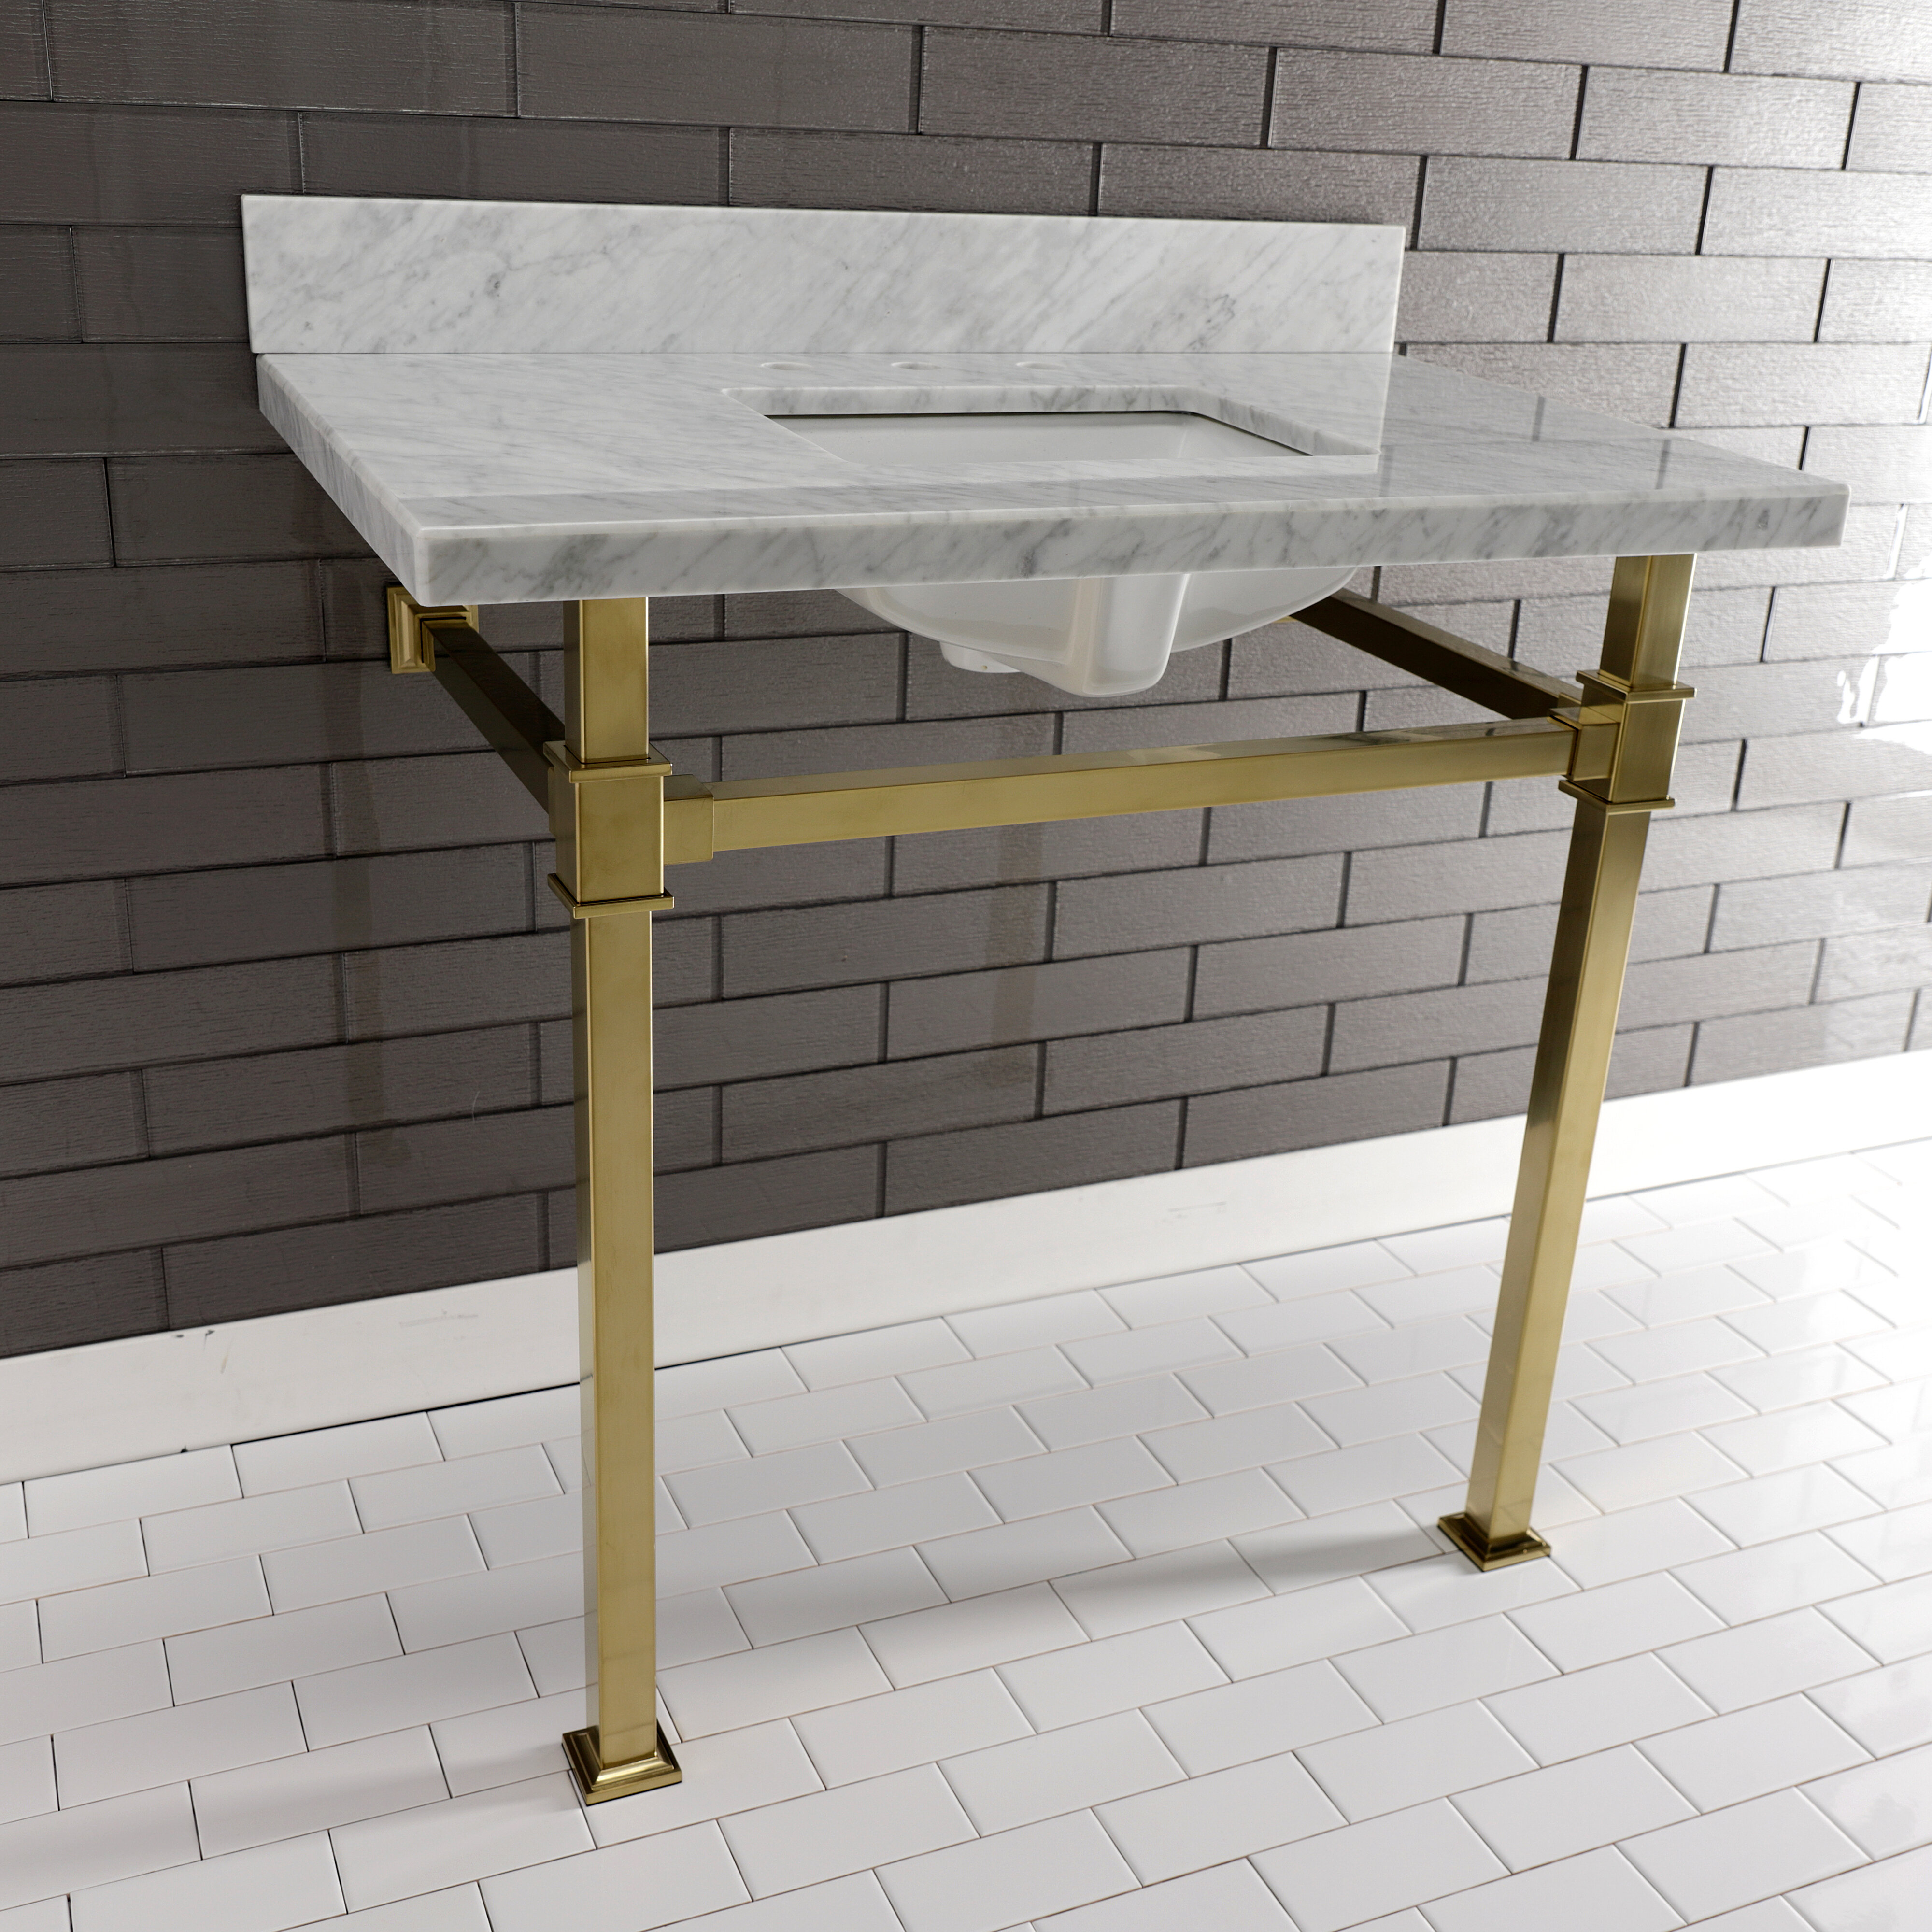 Kingston Brass Monarch Marble Rectangular Console Bathroom Sink With Overflow Wayfair